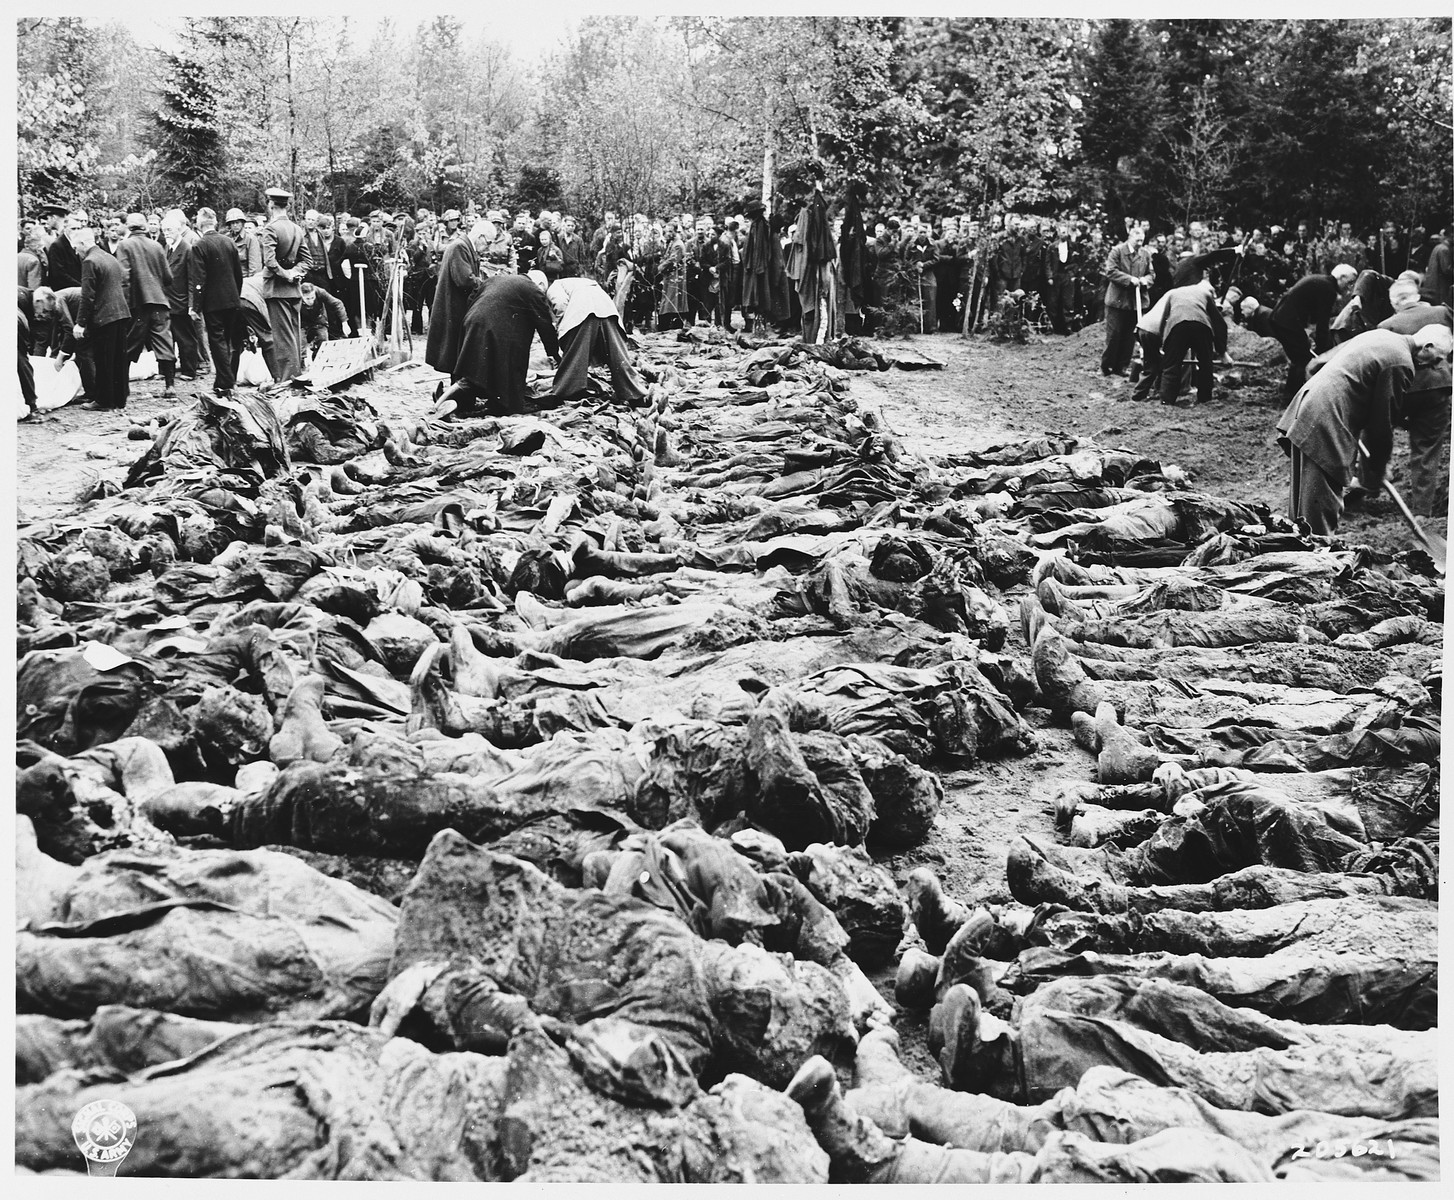 """Under American Army supervision, townspeople from Hannover are forced to watch as Nazi Party members exhume the bodies of 200 Russian officers and others shot by the SS near Wuelfel.  On April 8, 1945, 200 Red Army officers and other prisoners of war were sent on a death march from the Liebenau labor camp, 50 kilometers NW of Hanover, where the prisoners worked in a munitions factory.  As they reached Wuelfel, a suburb of Hanover, the SS guards ordered 25 prisoners, including one woman, to dig a large grave.  While this was being done, a prisoner killed a guard with a shovel and was able to escape to the woods nearby.  From there he heard the shots as the remaining prisoners were killed and buried in the grave.  Several weeks later, as American troops swept through the area, the mass grave was discovered.  On May 2, the 35th Division of the U.S. Ninth Army gathered townspeople from Wuelfel and forced them to exhume the grave, wrap the bodies in sheets, and rebury them near the Hanover City Hall.  Before reburial, many of the victims were identified by friends and relatives remaining in the area.  The original Signal Corps photo reads,  """"NAZIS MASSACRE RUSSIAN PRISONERS April 8, 1945, Nazi SS troops shot over 200 Russian Army officers and enlisted men, prisoners-of-war at Wulfel, a suburb of Hanover, Germany.  The victims were marching to Wulfel from their previous prison camp near Libenau, 50 kilometers from Hanover, as the Americans took the latter city.  Twenty-five of the victims, including a woman, were forced to dig the graves before being murdered.  During the proceedings one of the group killed a German guard with a shovel, escaped into the woods nearby and heard the shooting as the Germans massacred his comrades in cold blood.  The bodies were put into mass graves and hastily covered with earth.  When troops of the 35th Division, Ninth U.S. Army, took over the camp, German civilians and Nazi Party members of Hanover were orderd to witness and to participate """